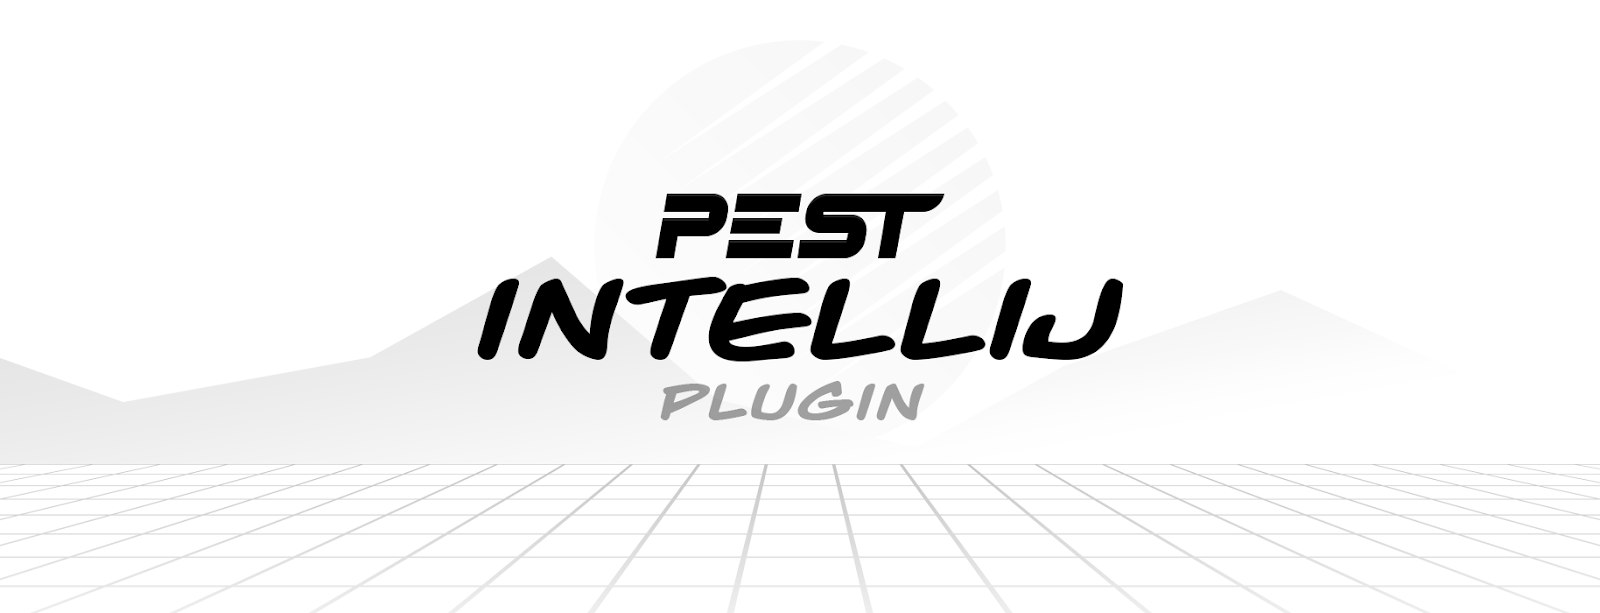 How the Pest PhpStorm Plugin Will Improve Your Testing Workflow